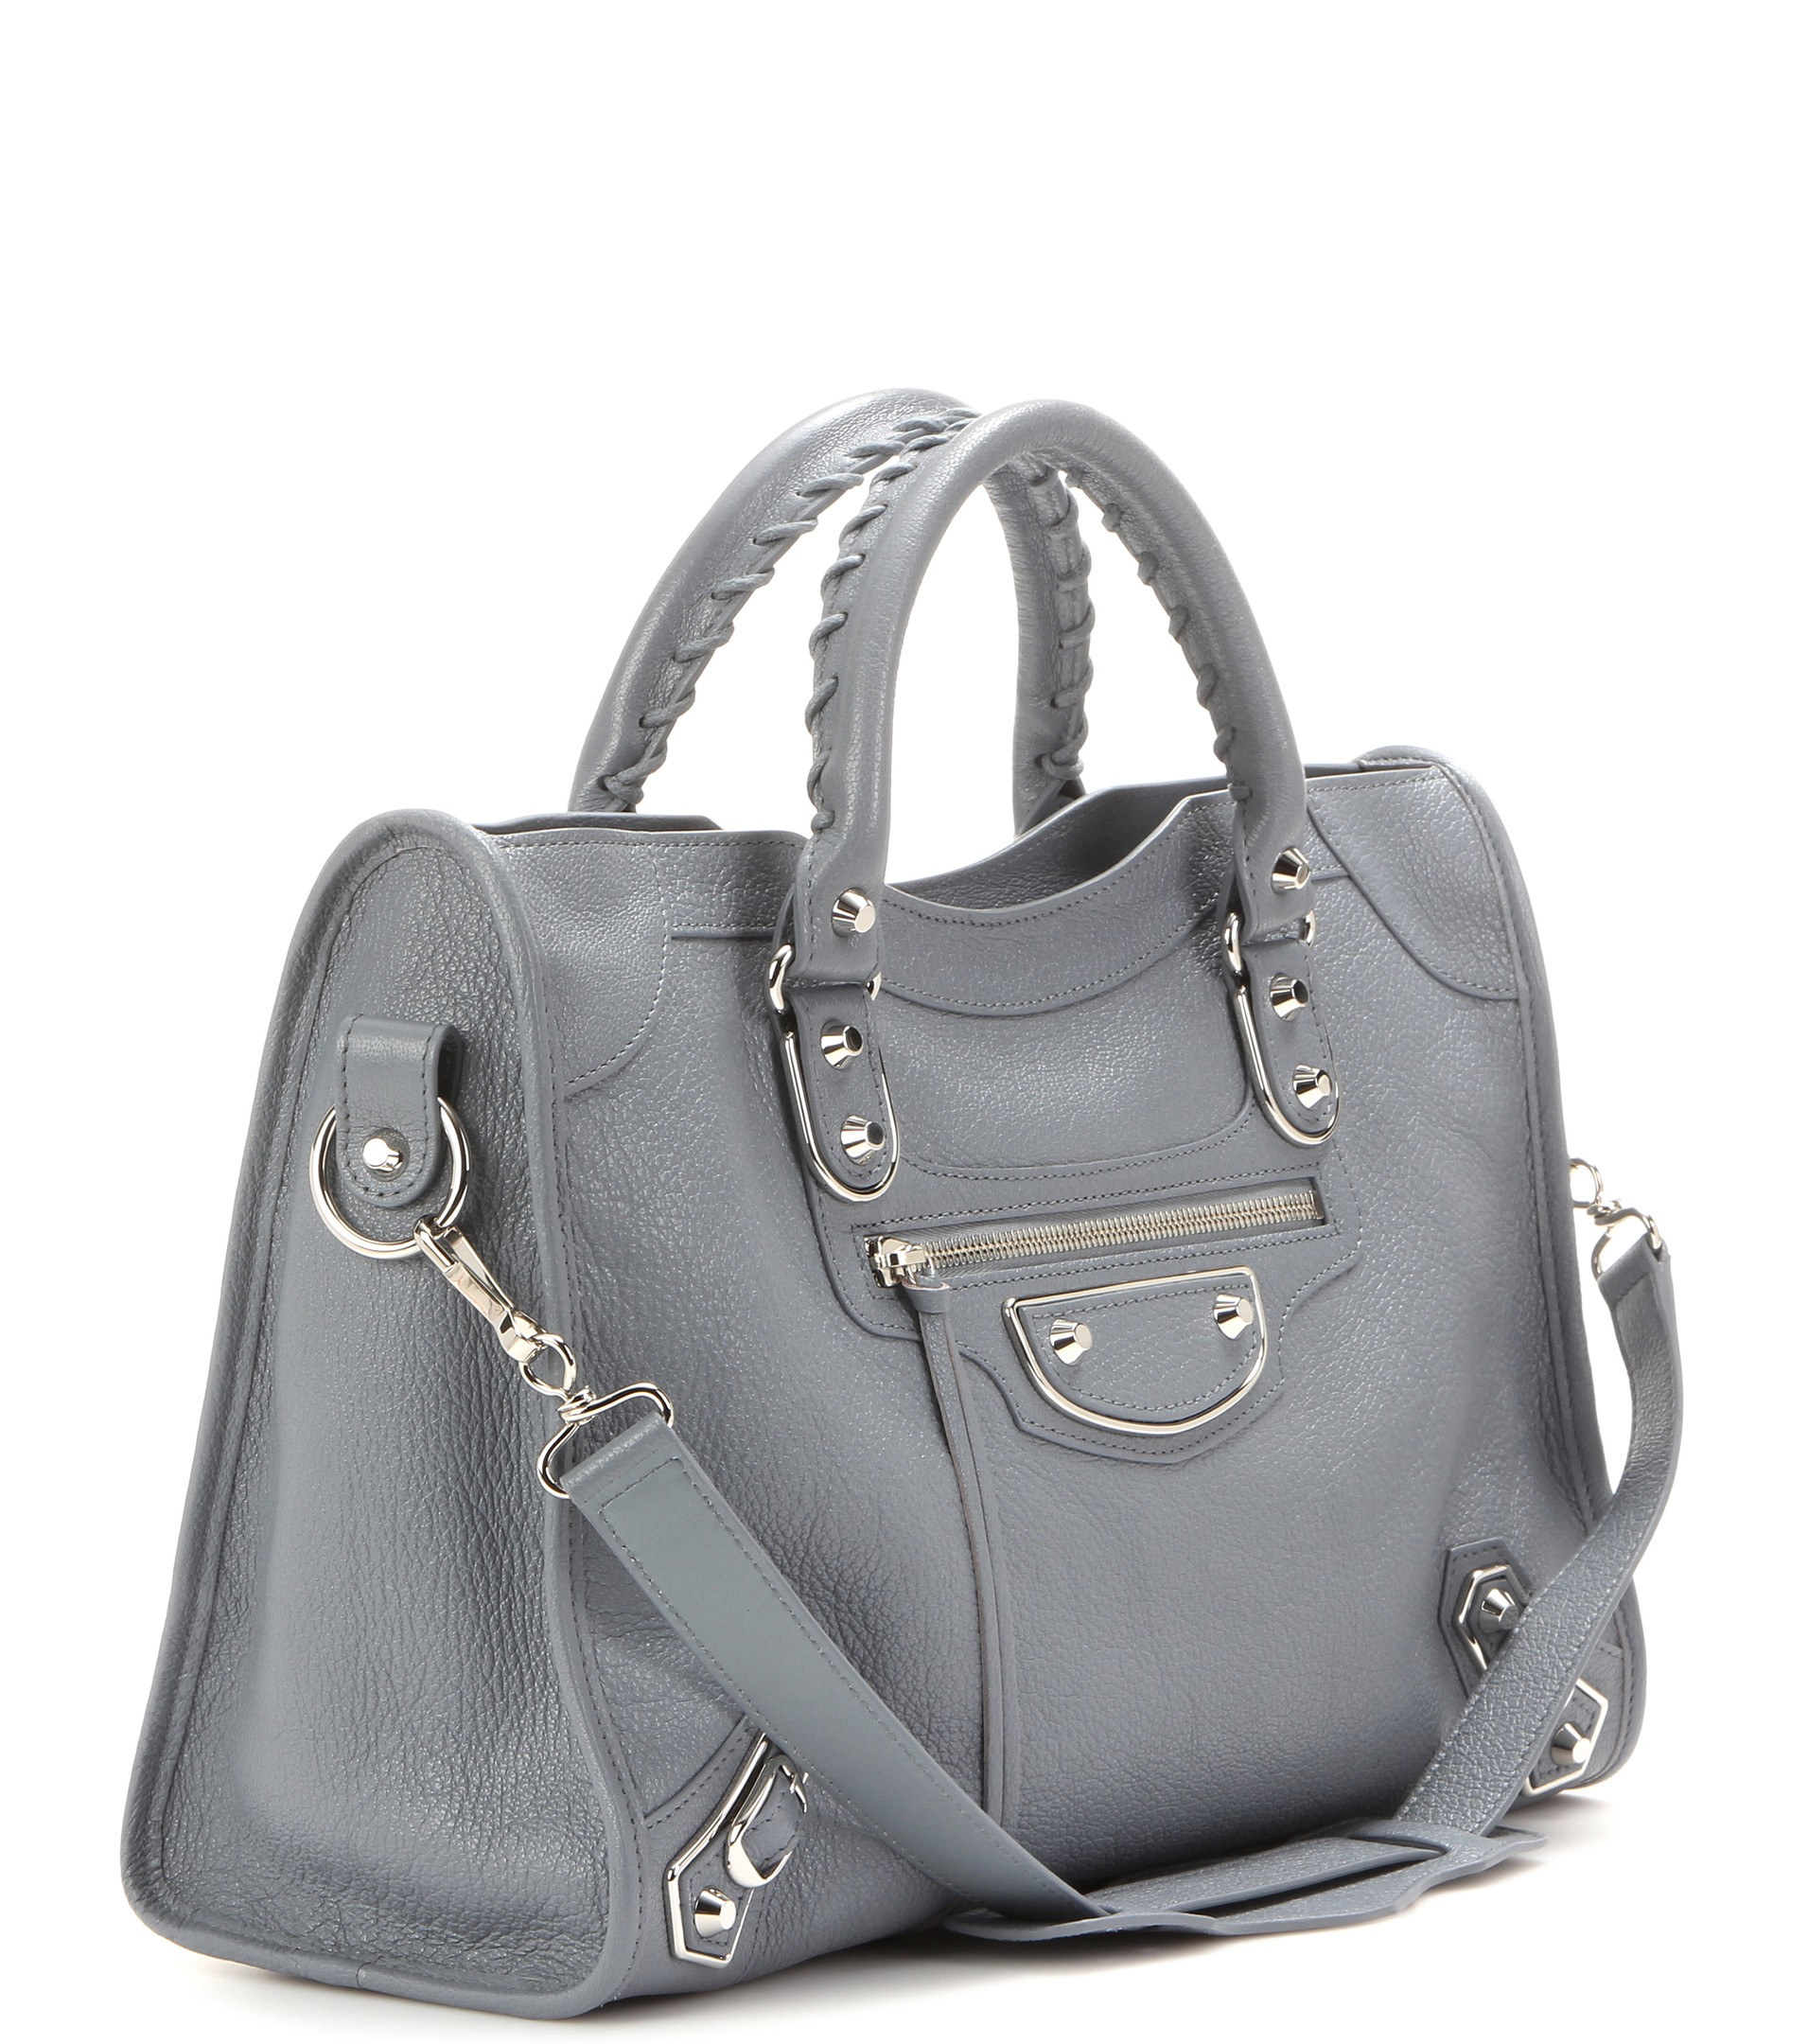 Balenciaga City Grey